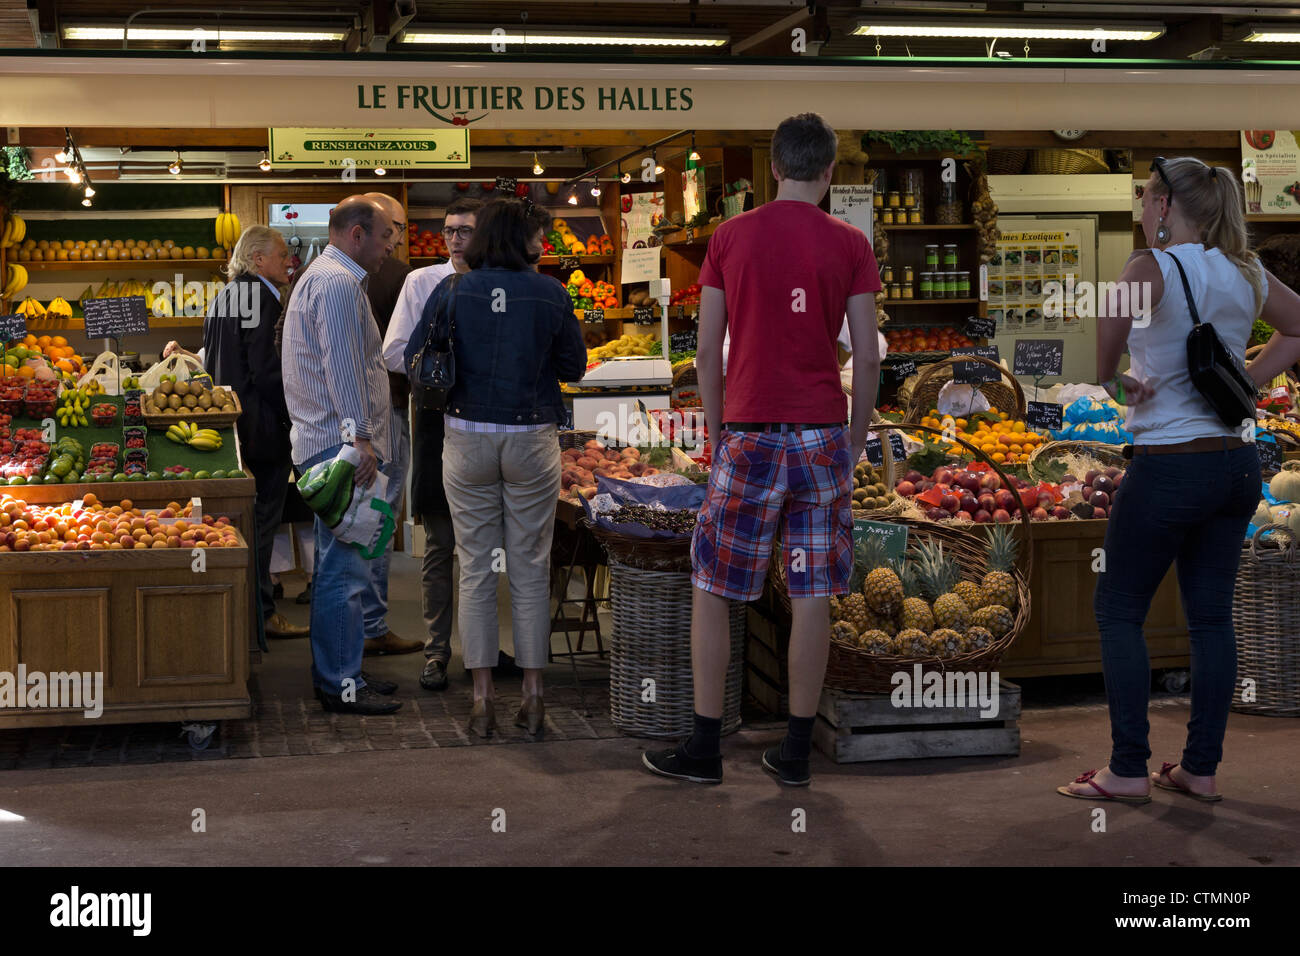 Food normandy shop shopping stock photos food normandy shop shopping stock images alamy - Carrefour market montpellier port marianne ...